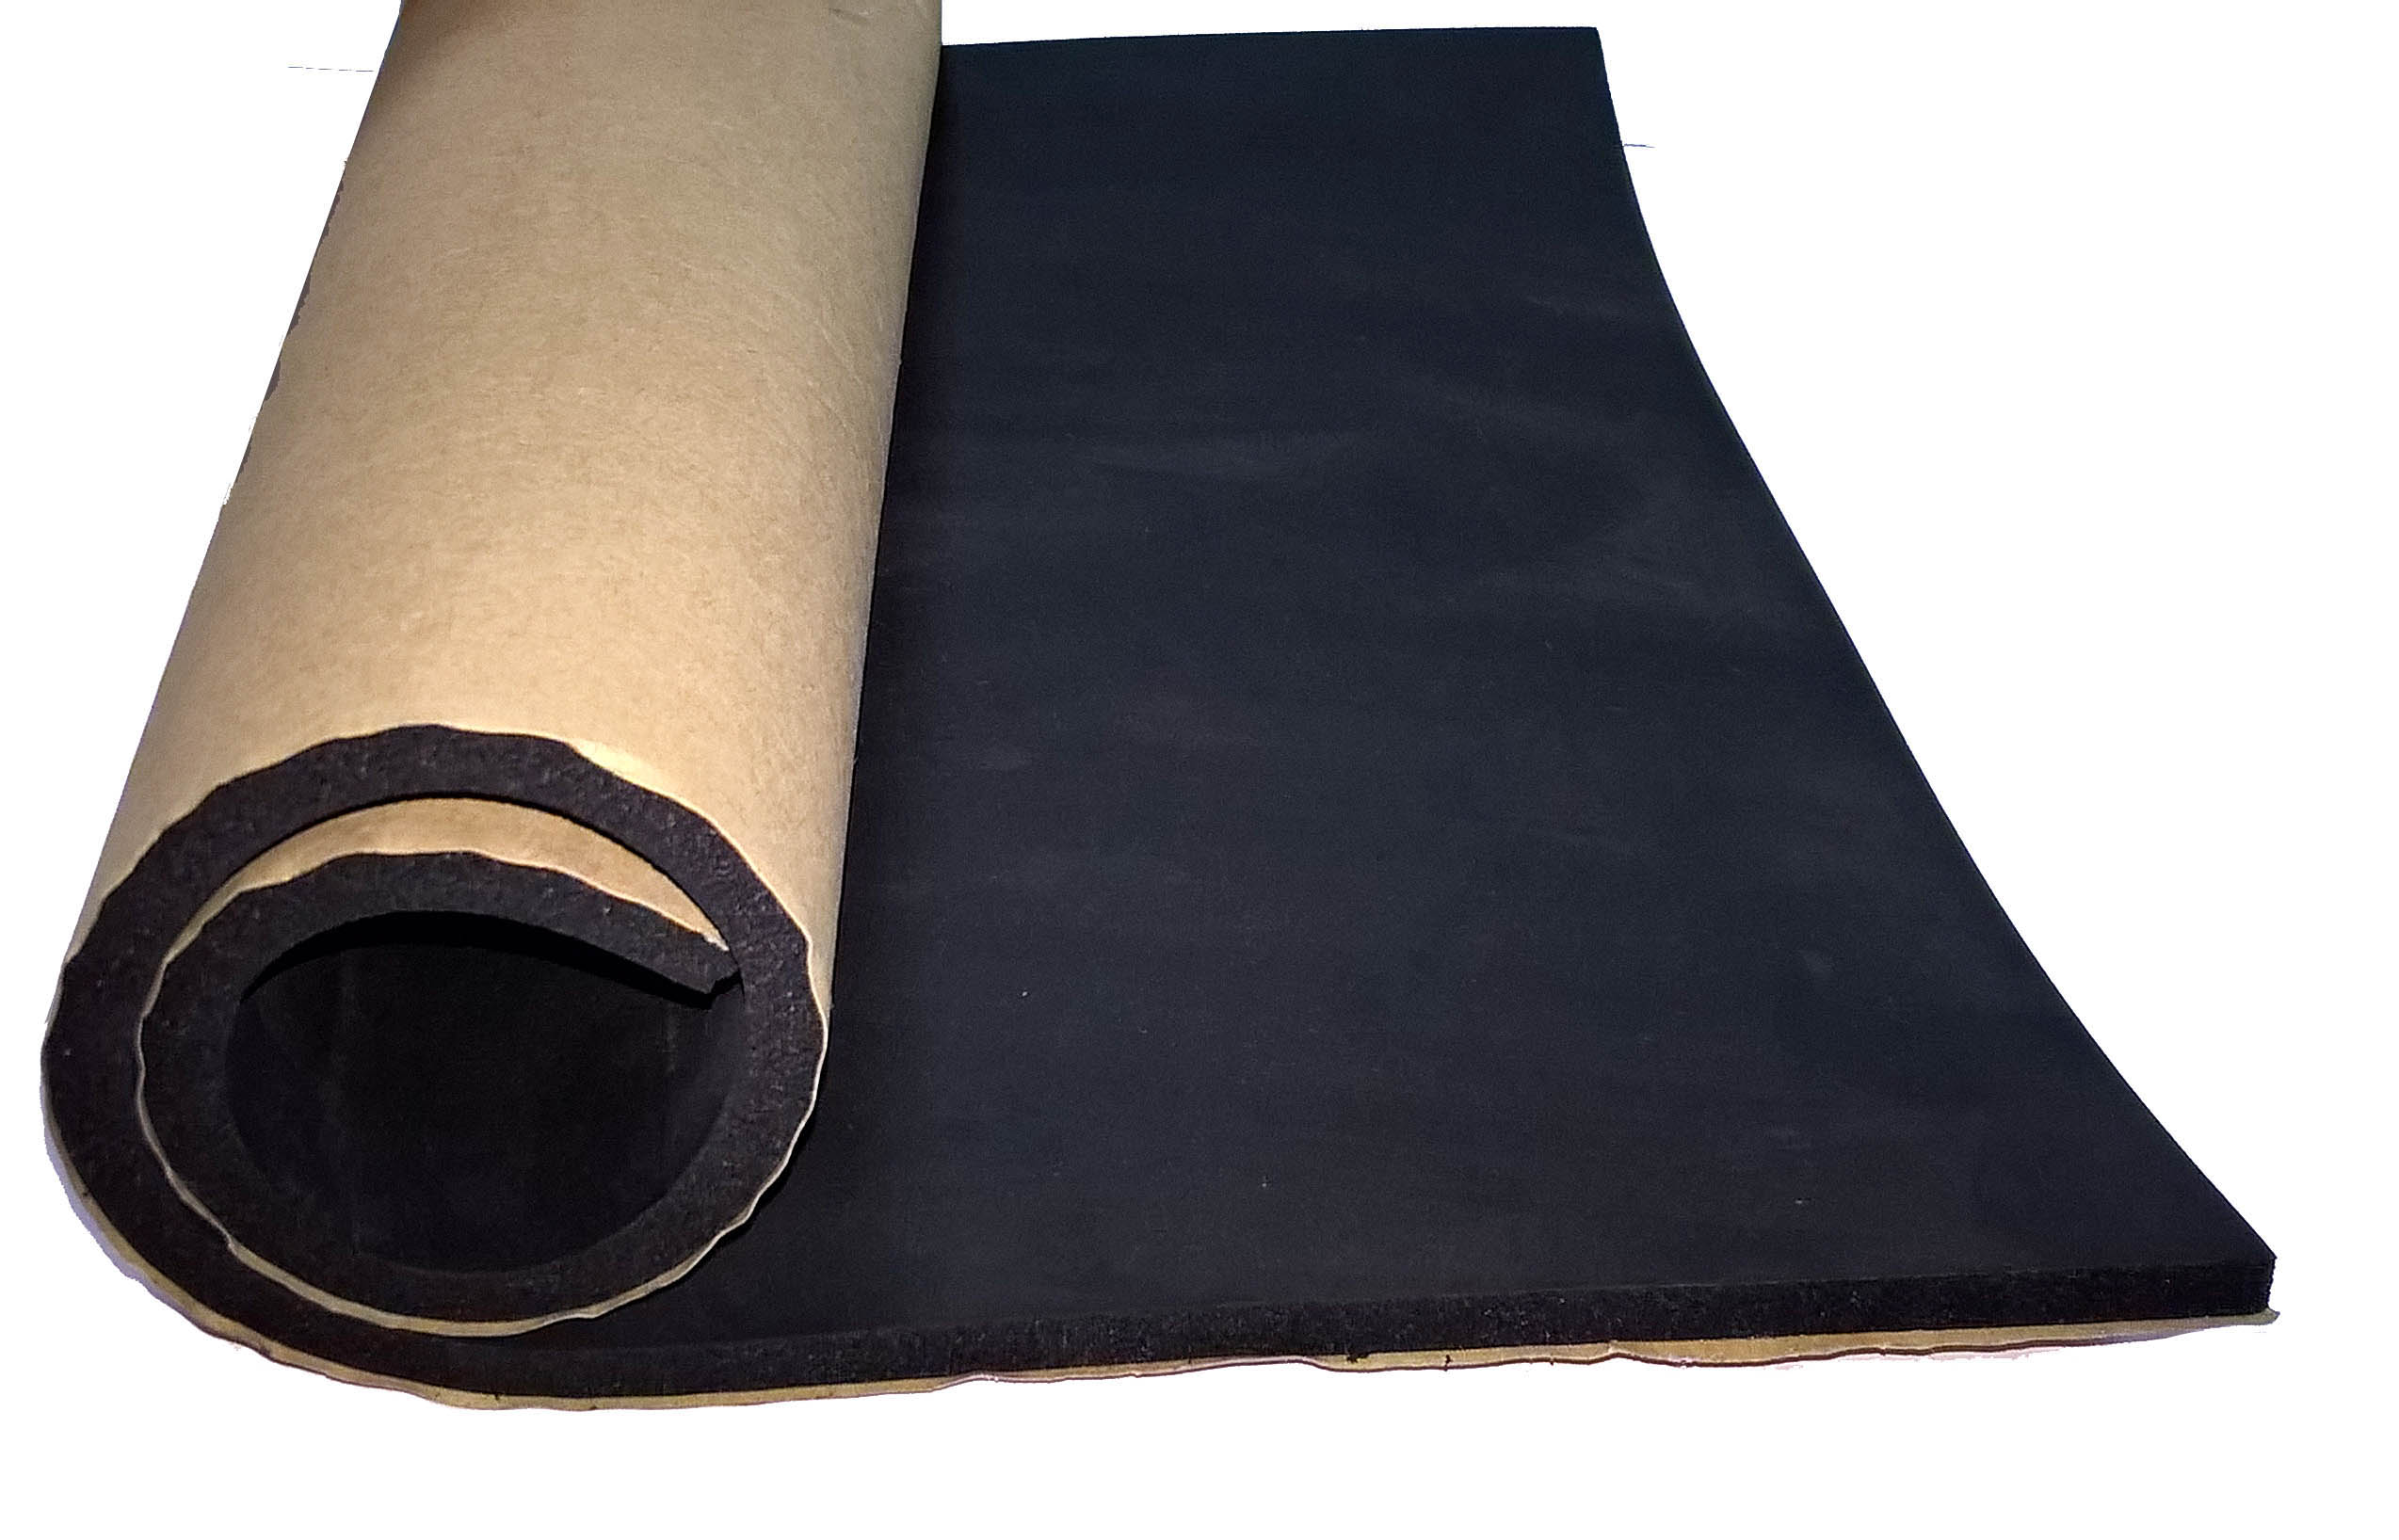 GY-02 Foam rubber sound proofing material